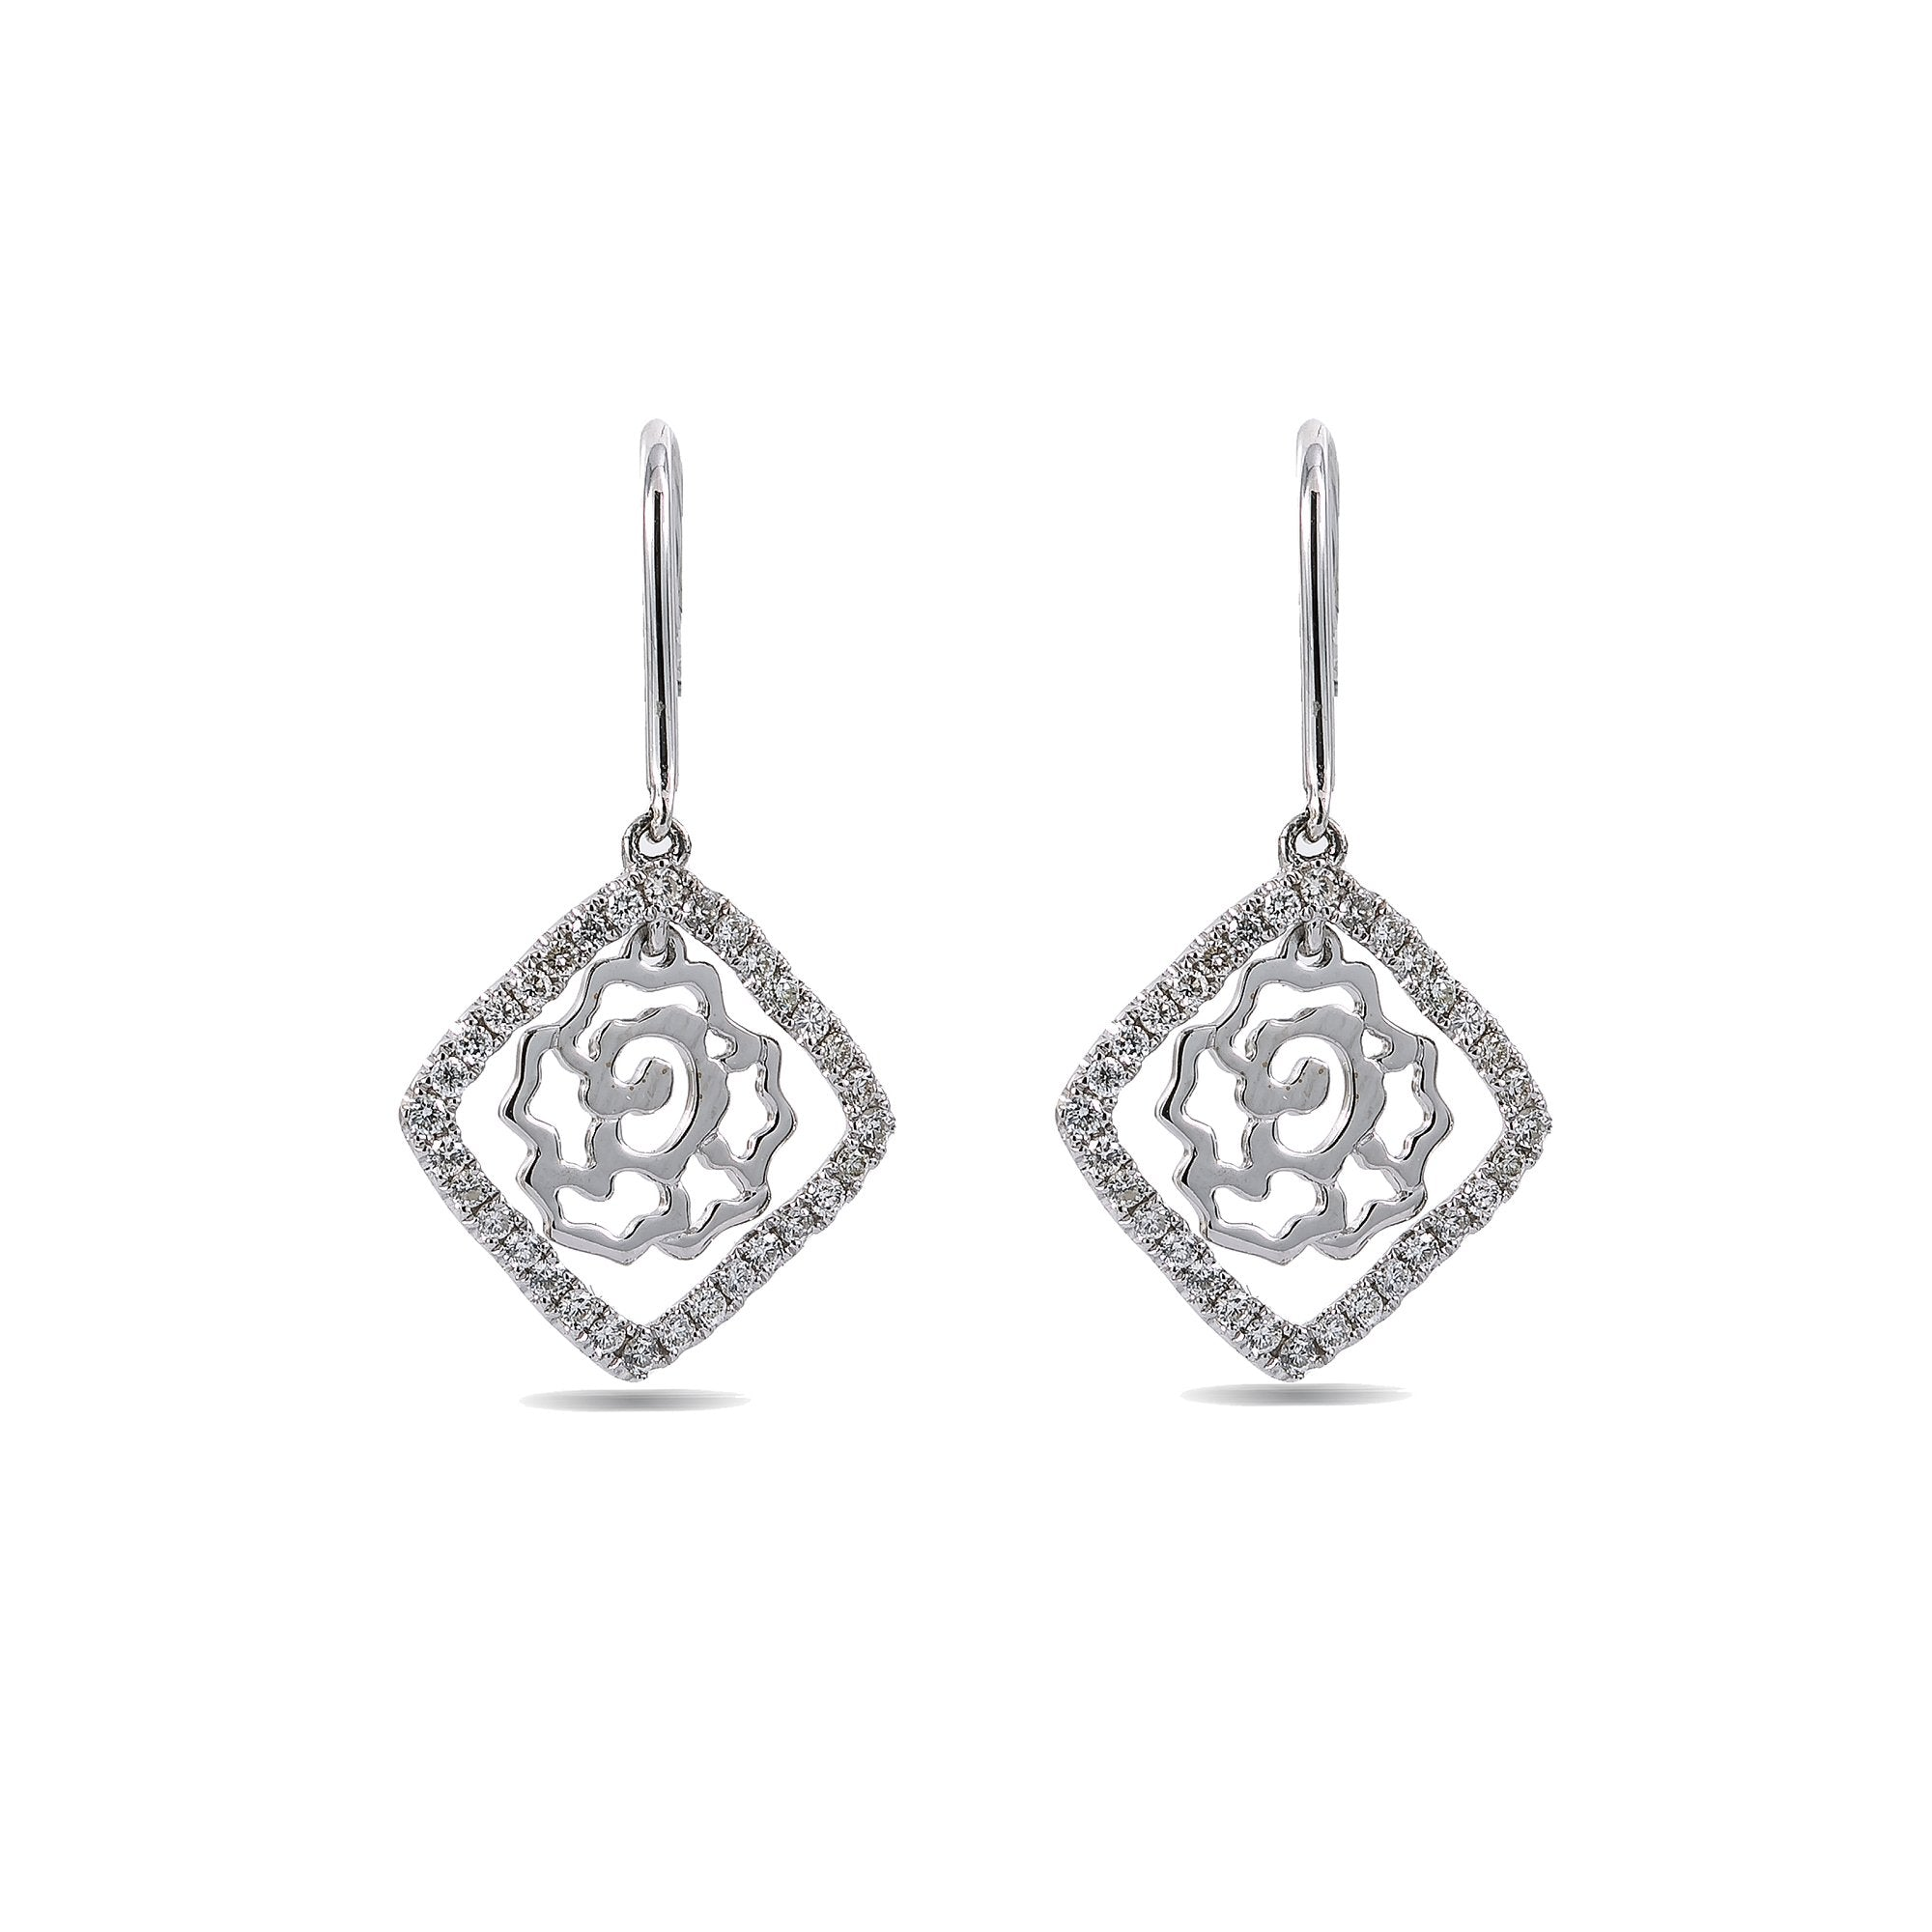 18K White Gold Ladies Drop Earrings With 0.5 CT Diamonds